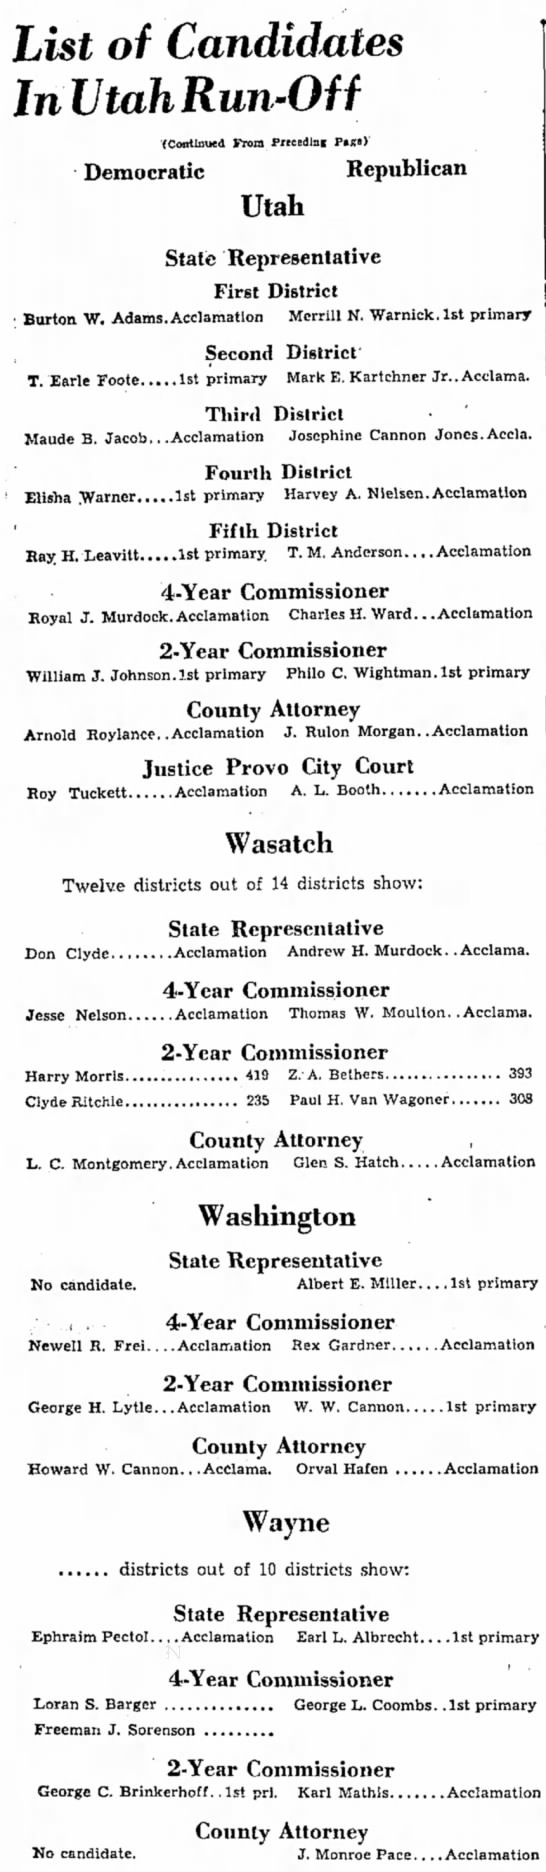 2 Oct 1940 List of Candidates in Utah Run-Off George C Brinkerhoff 2 Year Commissioner -